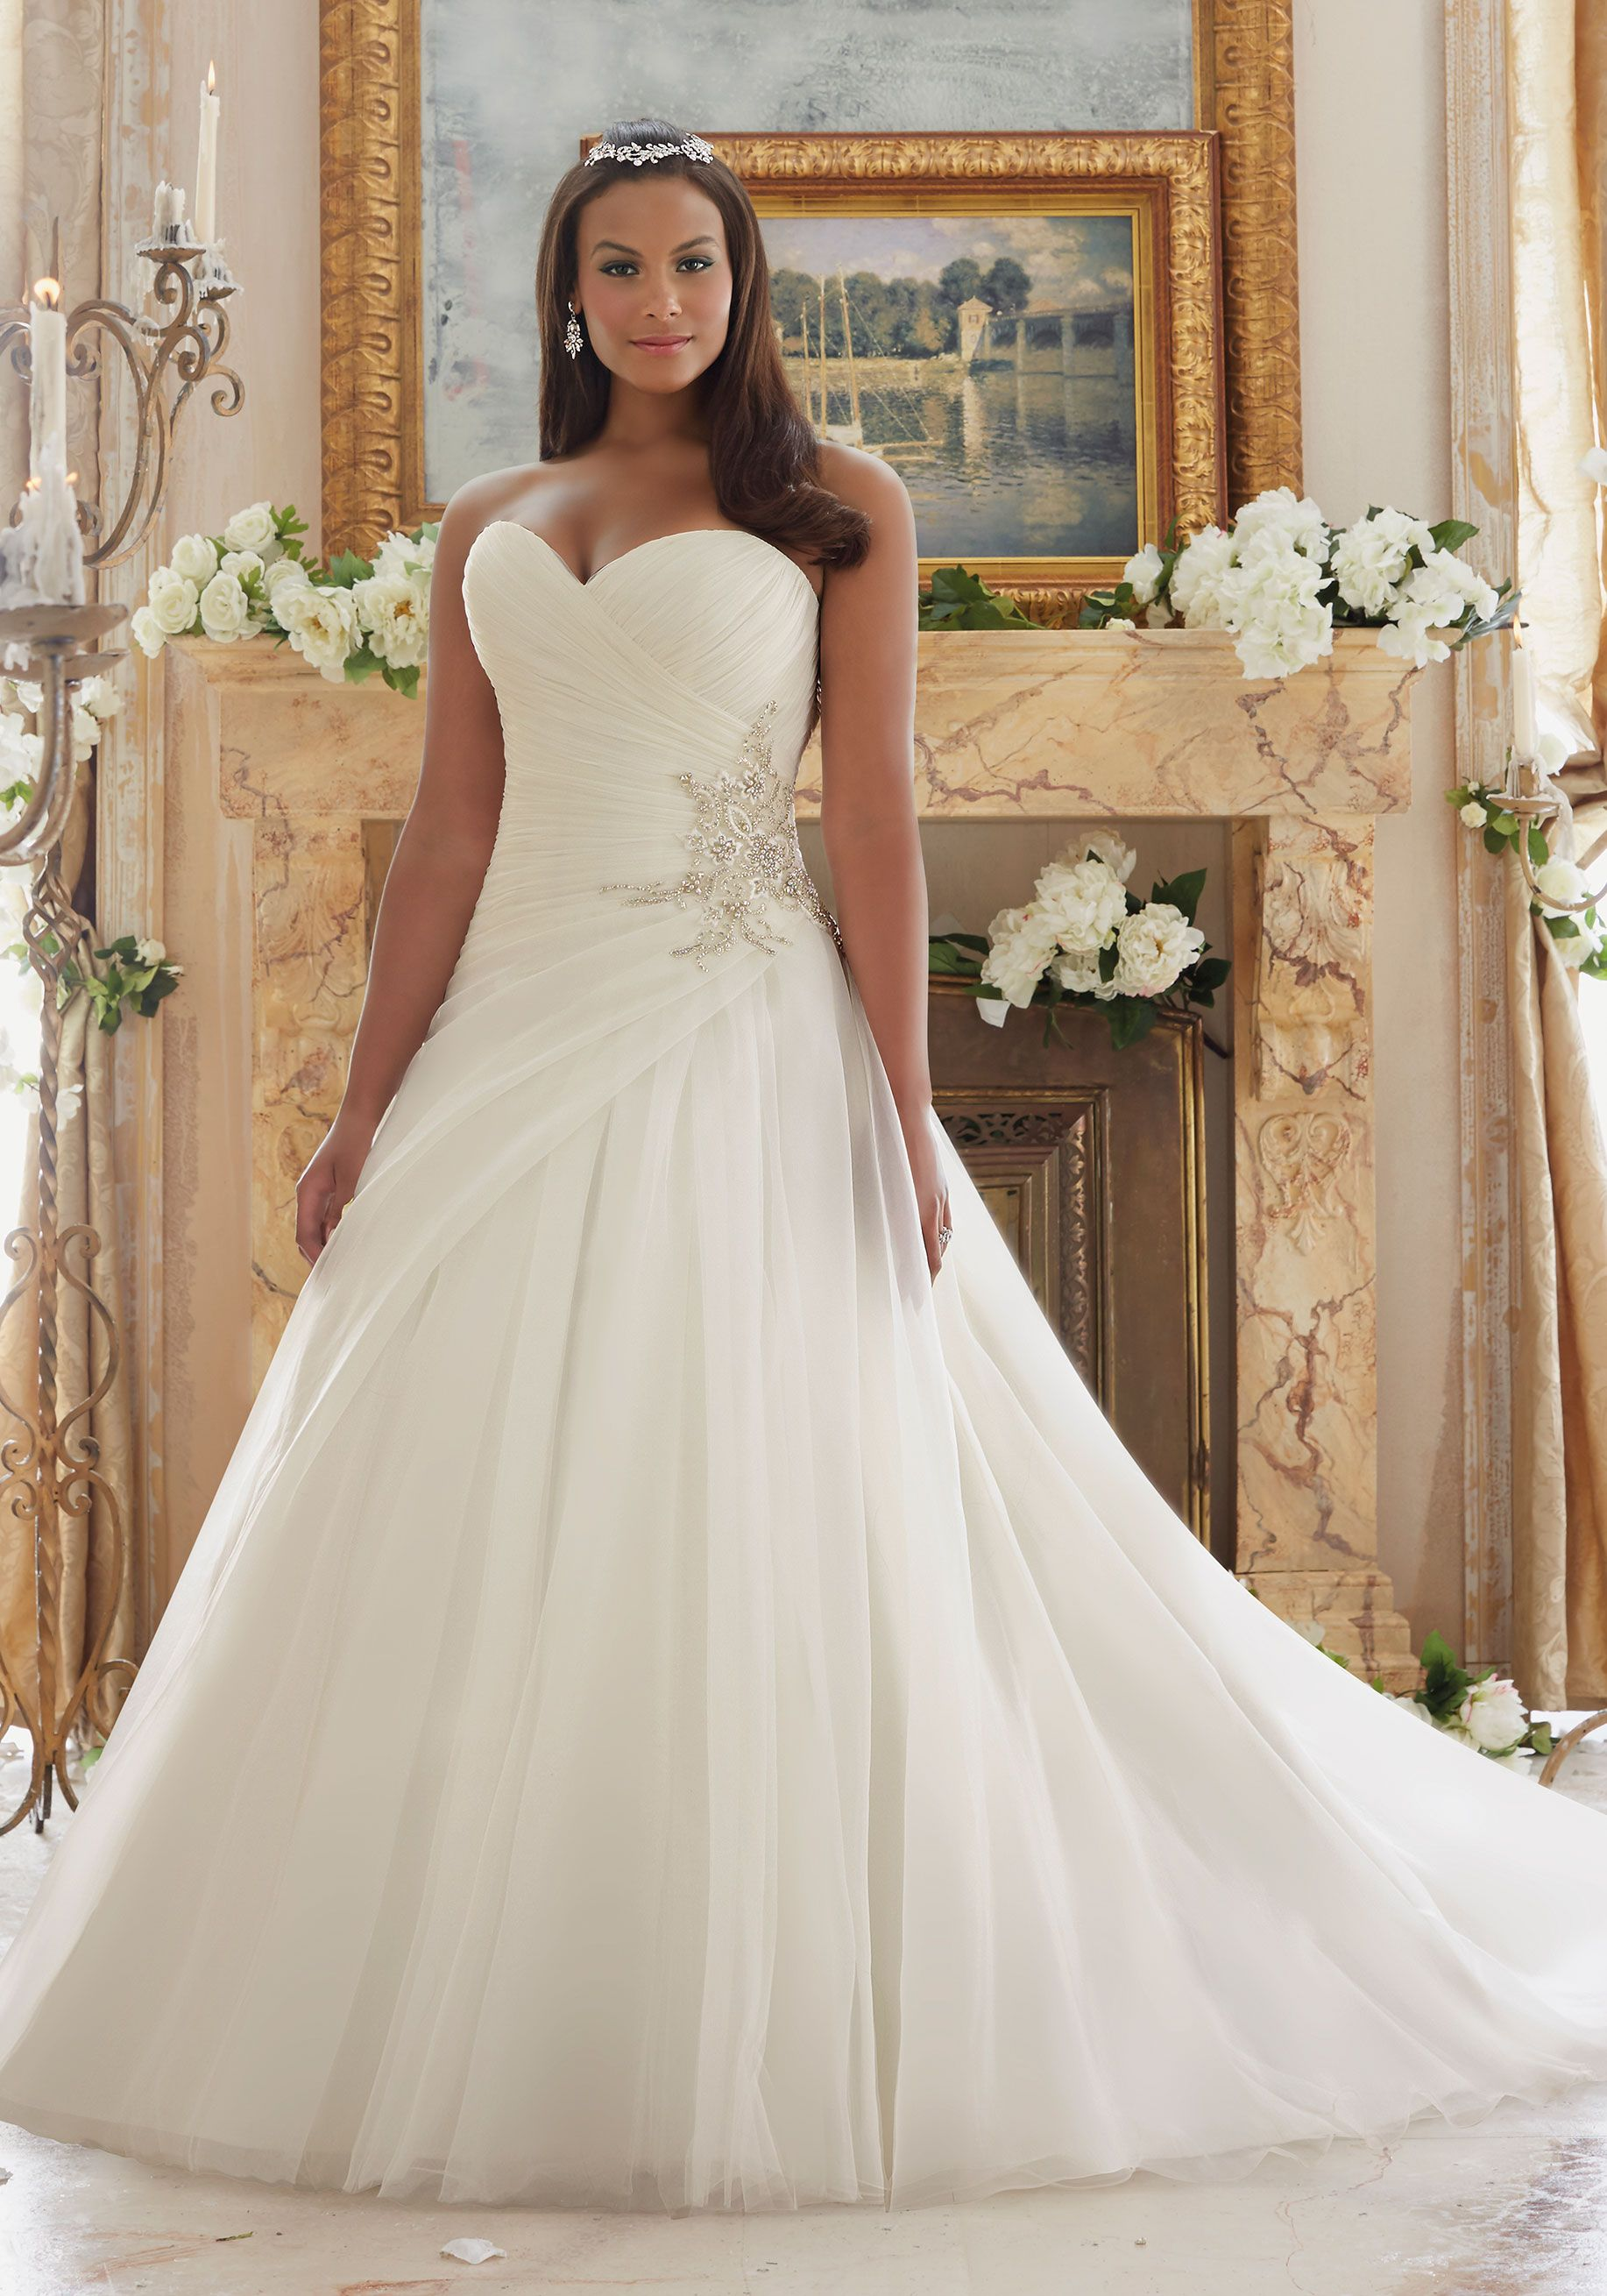 Diamante Beaded Appliques on Organza and Tulle Plus Size Wedding ...